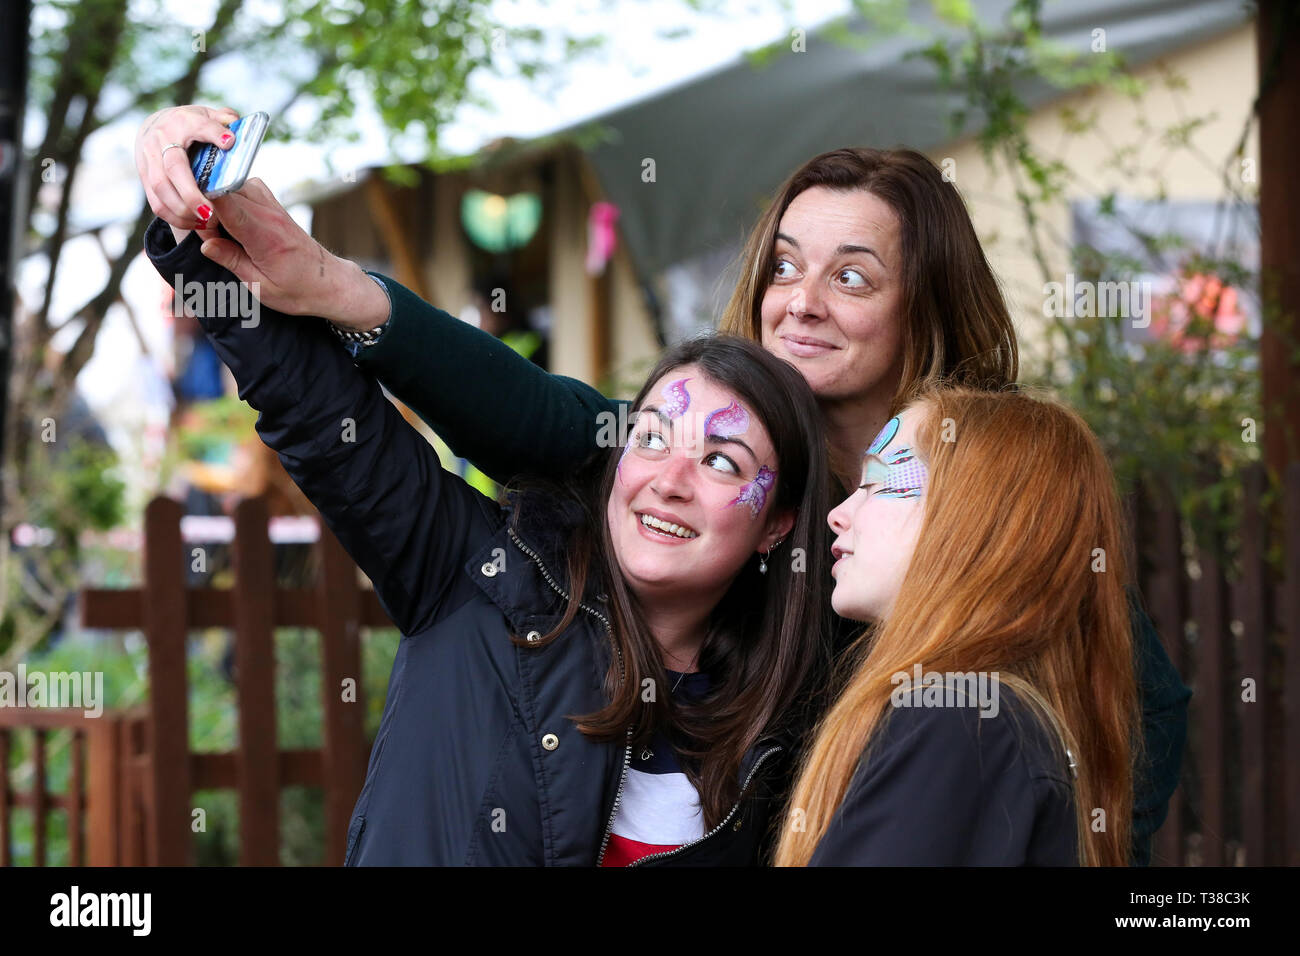 London, UK, UK. 7th Apr, 2019. Spectators are seen taking a selfie before the Oxford vs Cambridge Goat Race in East London.Two pygmy goats compete during the 10th Oxford and Cambridge Goat Race at Spitalfields City Farm, Bethnal Green in East London. The annual fundraising event, which takes place at the same time as the Oxford and Cambridge boat race, where two goats, one named Hamish representing Oxford and the other Hugo representing Cambridge to be crowned King Billy. Credit: Dinendra Haria/SOPA Images/ZUMA Wire/Alamy Live News - Stock Image